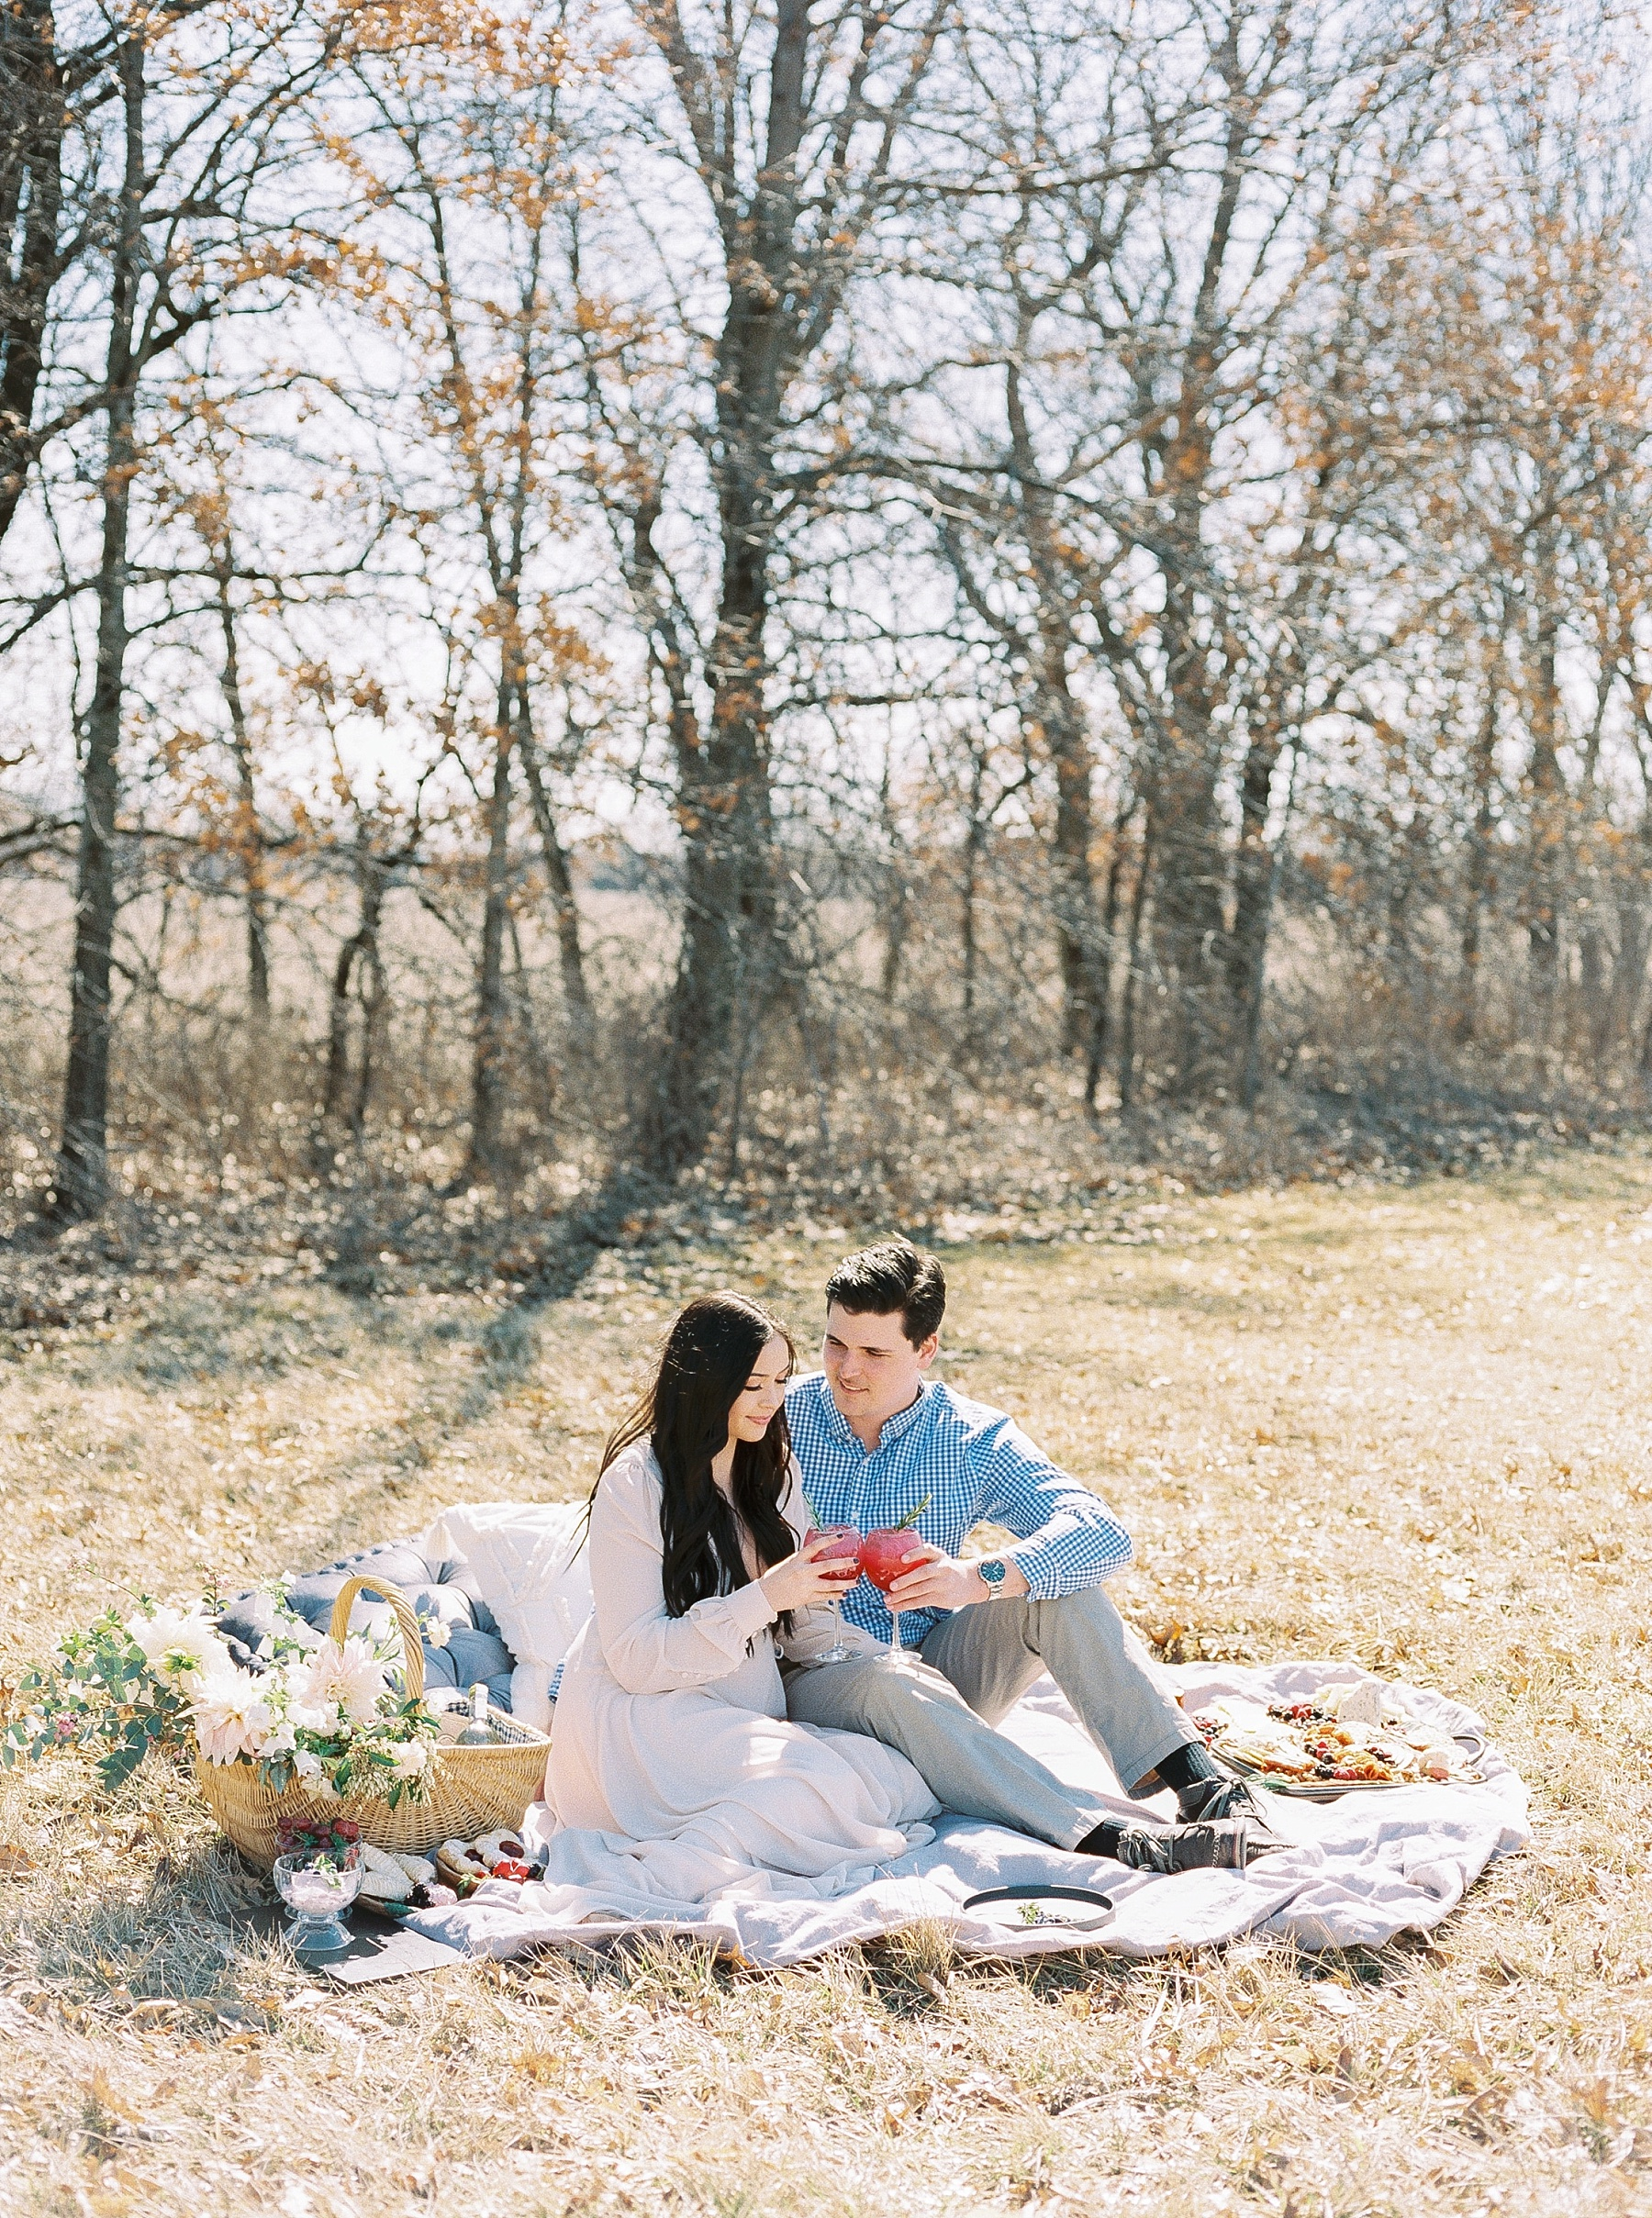 Late Fall Farm-to-table Inspired Brunch Picnic Engagement Session During Wedding Weekend by Kelsi Kliethermes Photography Best Missouri and Maui Wedding Photographer_0021.jpg